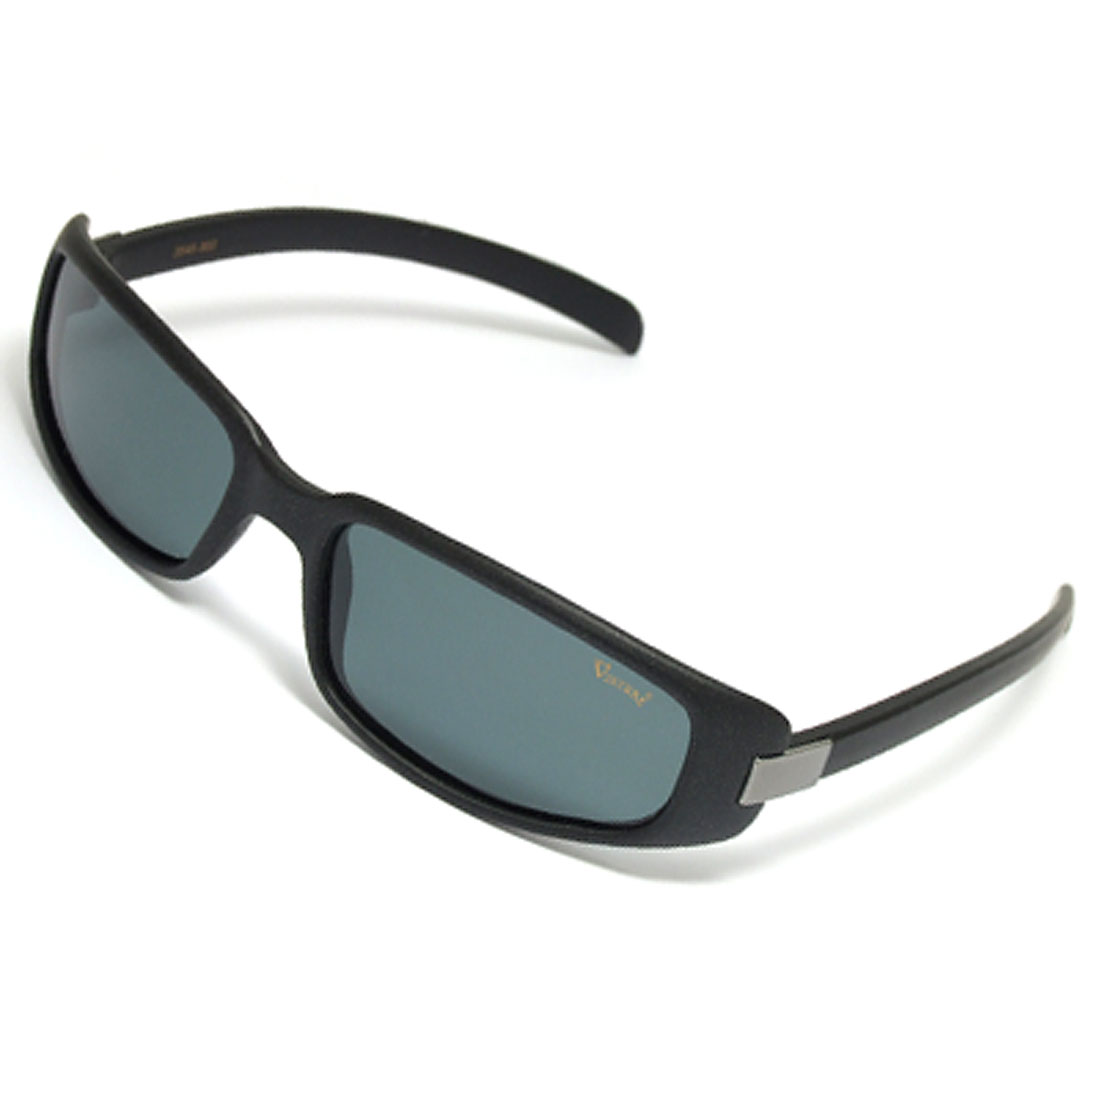 Full-rim Polarized Sports Sunglasses with Black Plastic Frame and Temple